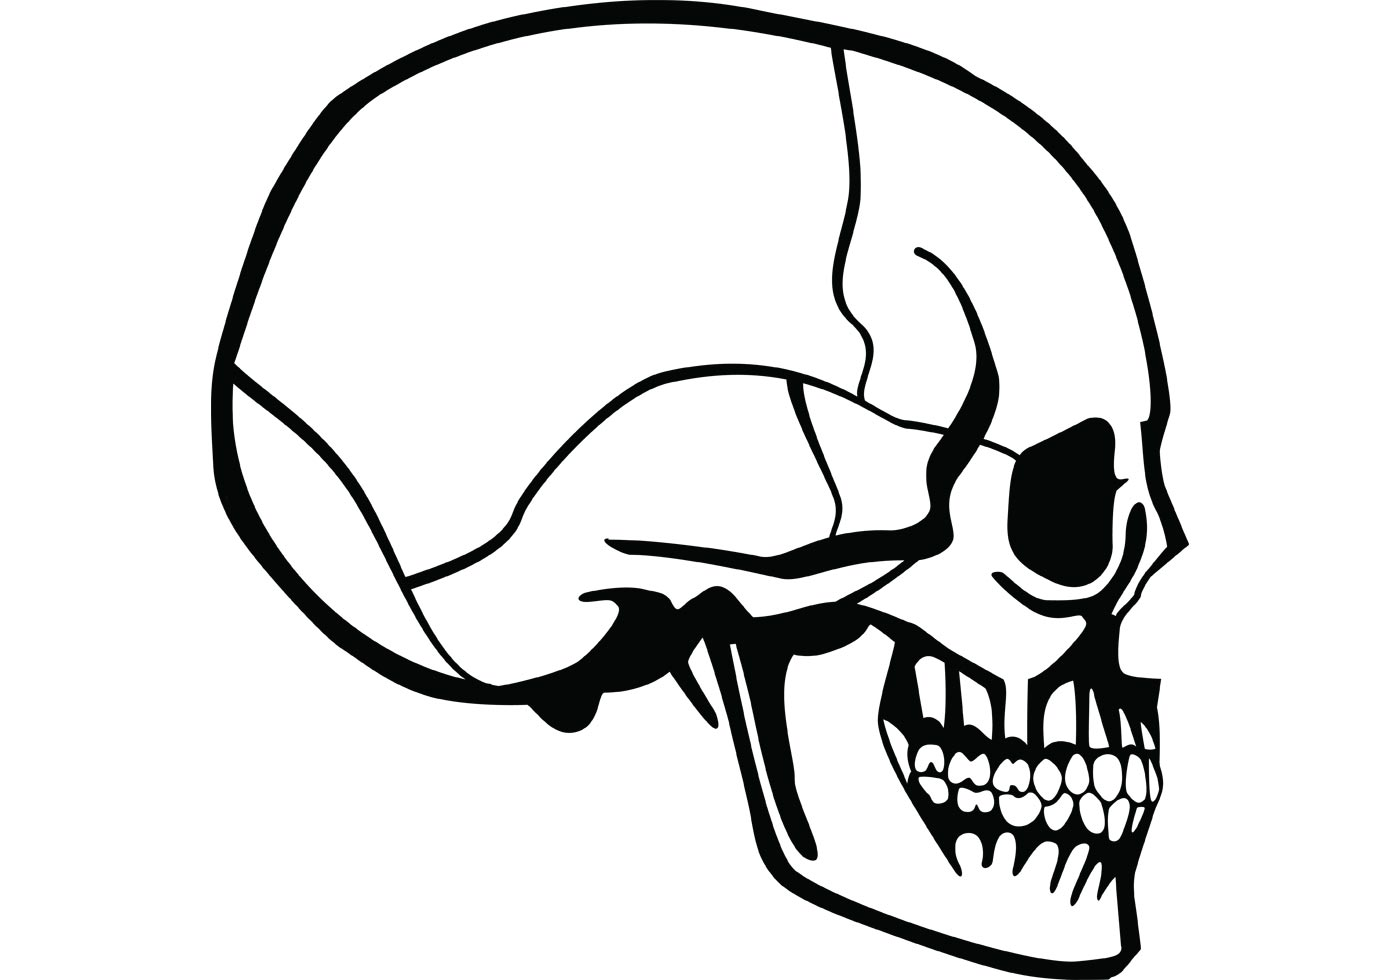 It's just an image of Invaluable Skull Profile Drawing